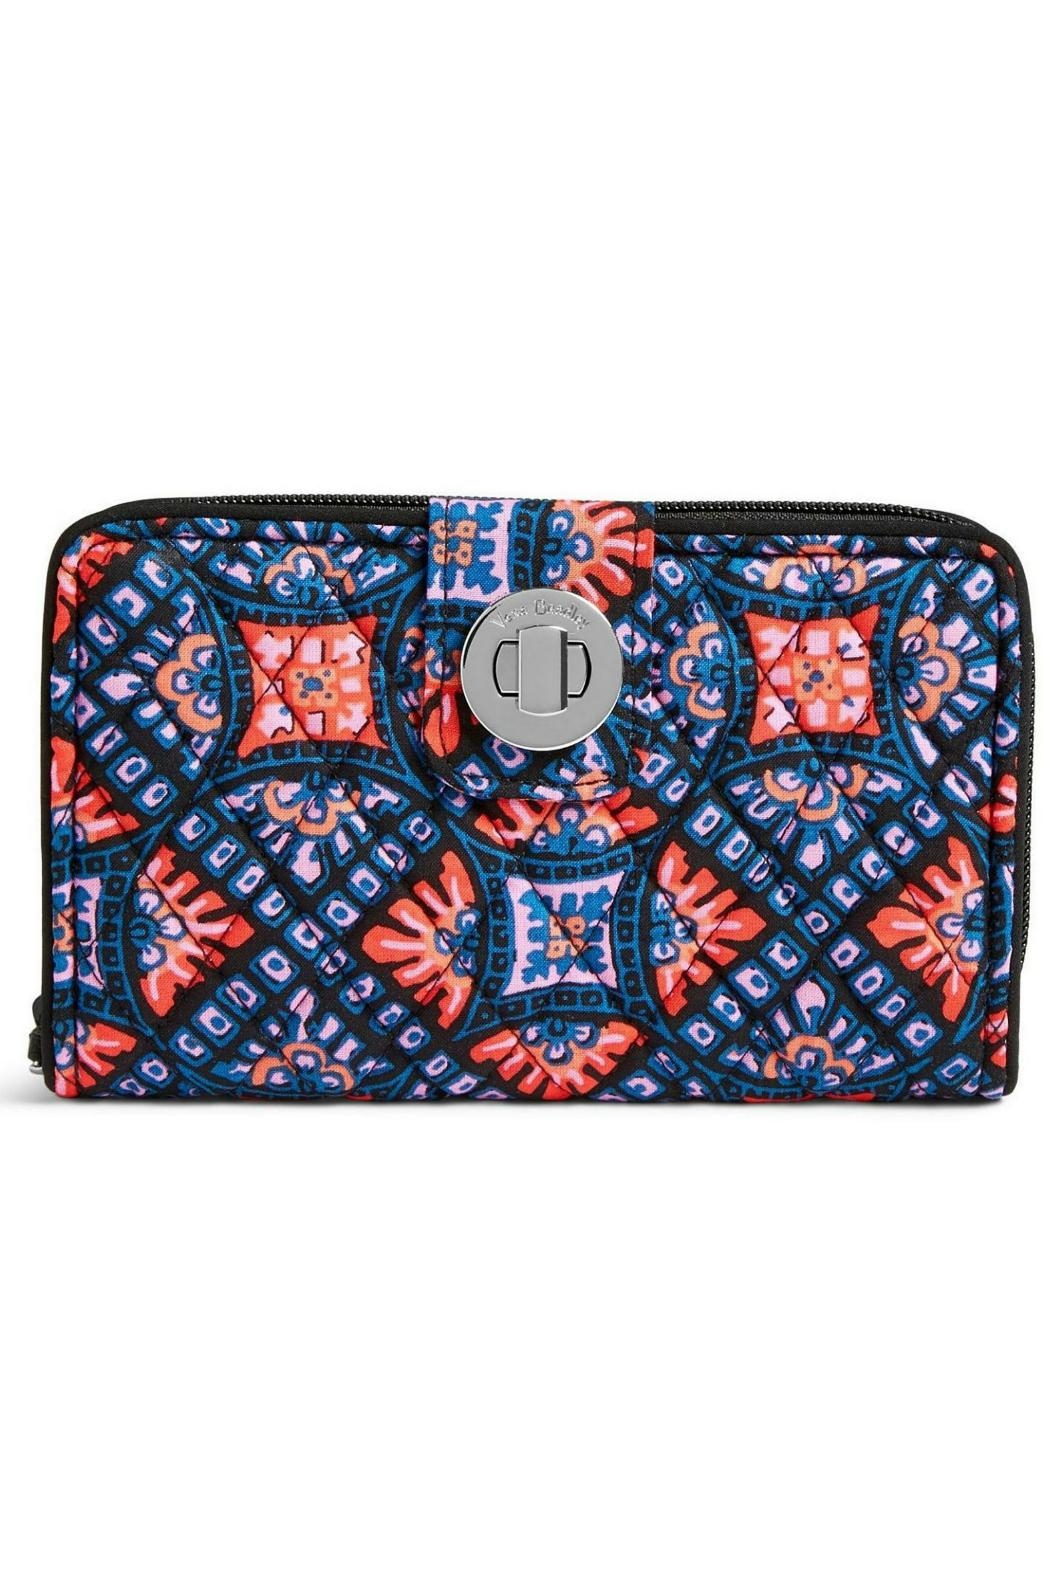 3bab31e0ba Vera Bradley Mosaic Rfid Turnlock from Kentucky by Mimi s Gift ...